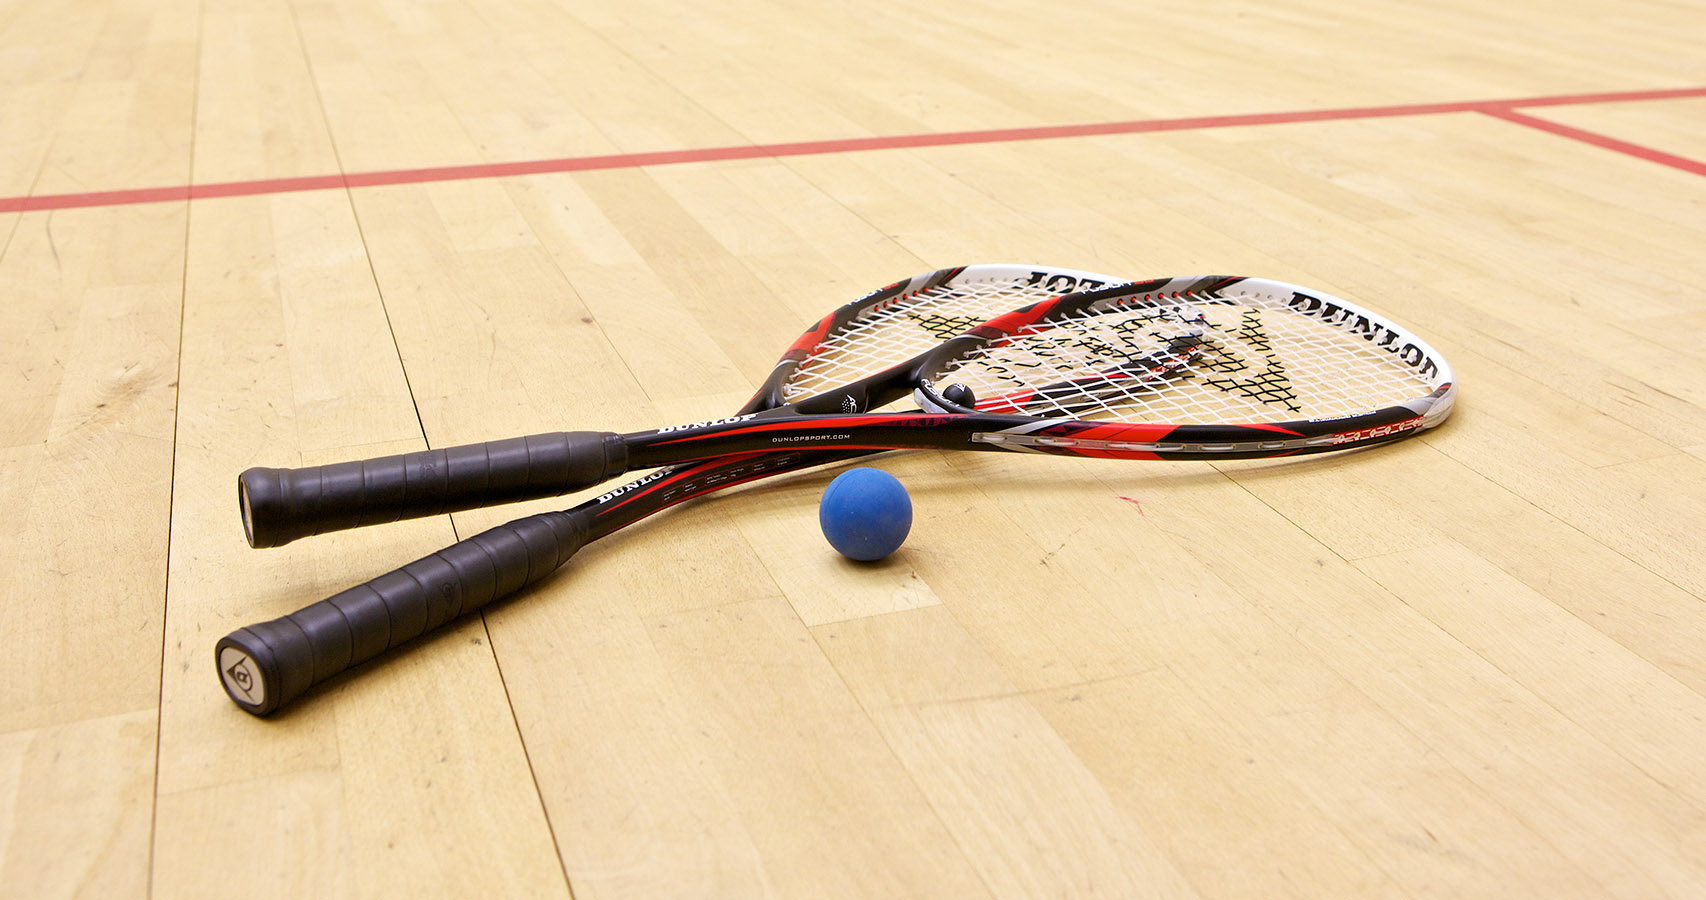 Two rackets and a squash ball on court